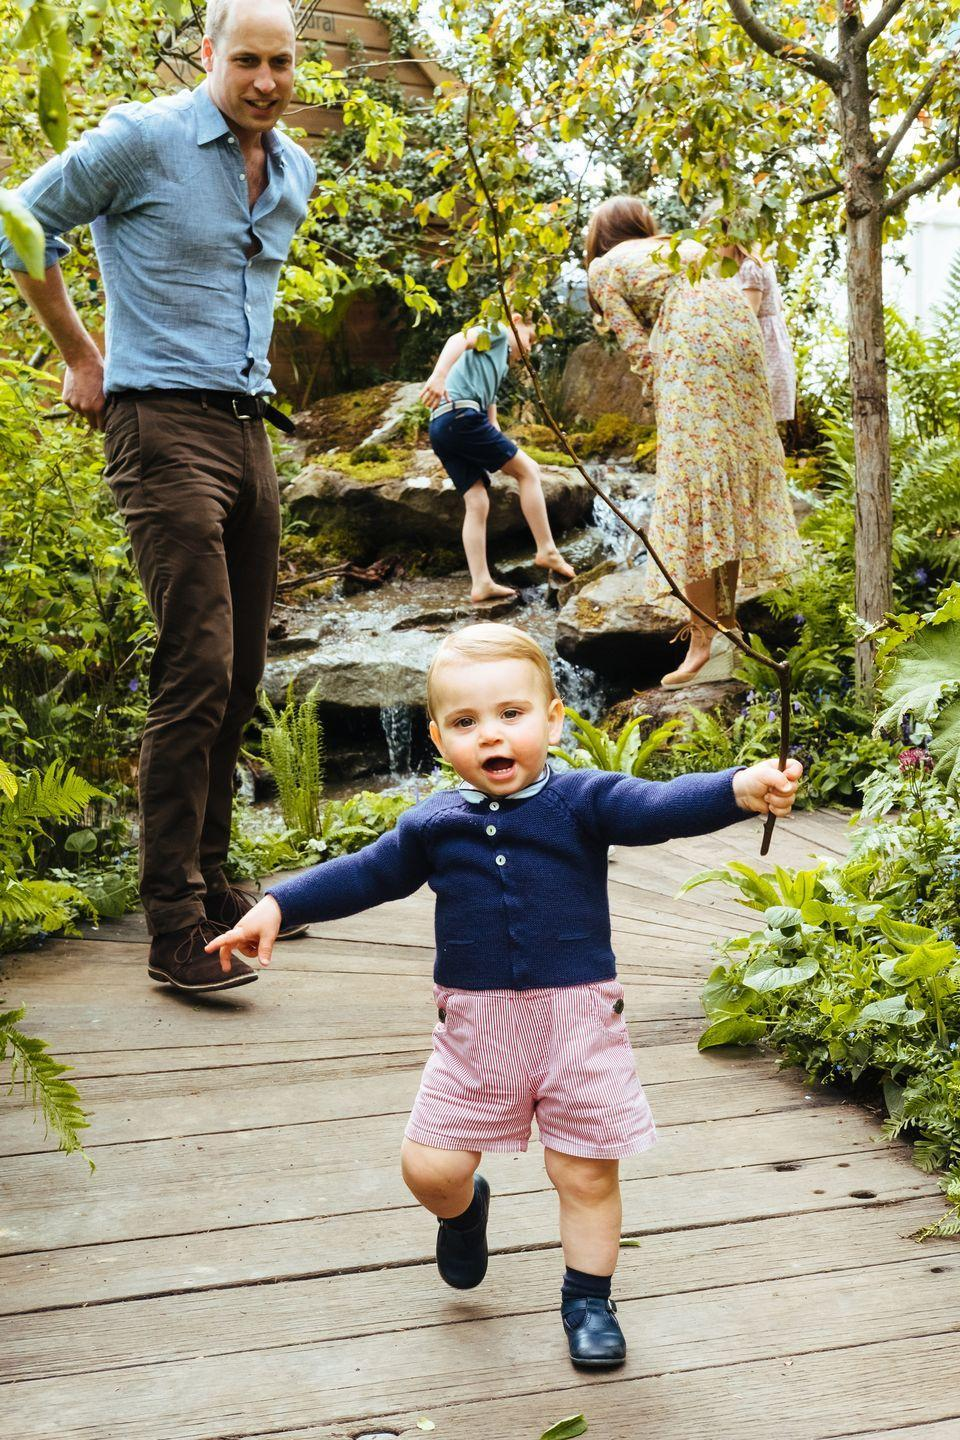 "<p>Prince Louis is walking! The little royal showed off his confident stride <a href=""https://www.townandcountrymag.com/society/tradition/a27520757/kate-middleton-william-george-charlotte-louis-photos-chelsea-flower-show/"" rel=""nofollow noopener"" target=""_blank"" data-ylk=""slk:at the Chelsea Flower Show"" class=""link rapid-noclick-resp"">at the Chelsea Flower Show</a>, where he and his siblings visited the garden designed by the Duchess of Cambridge. Prince William looked on at Louis headed towards the camera. </p>"